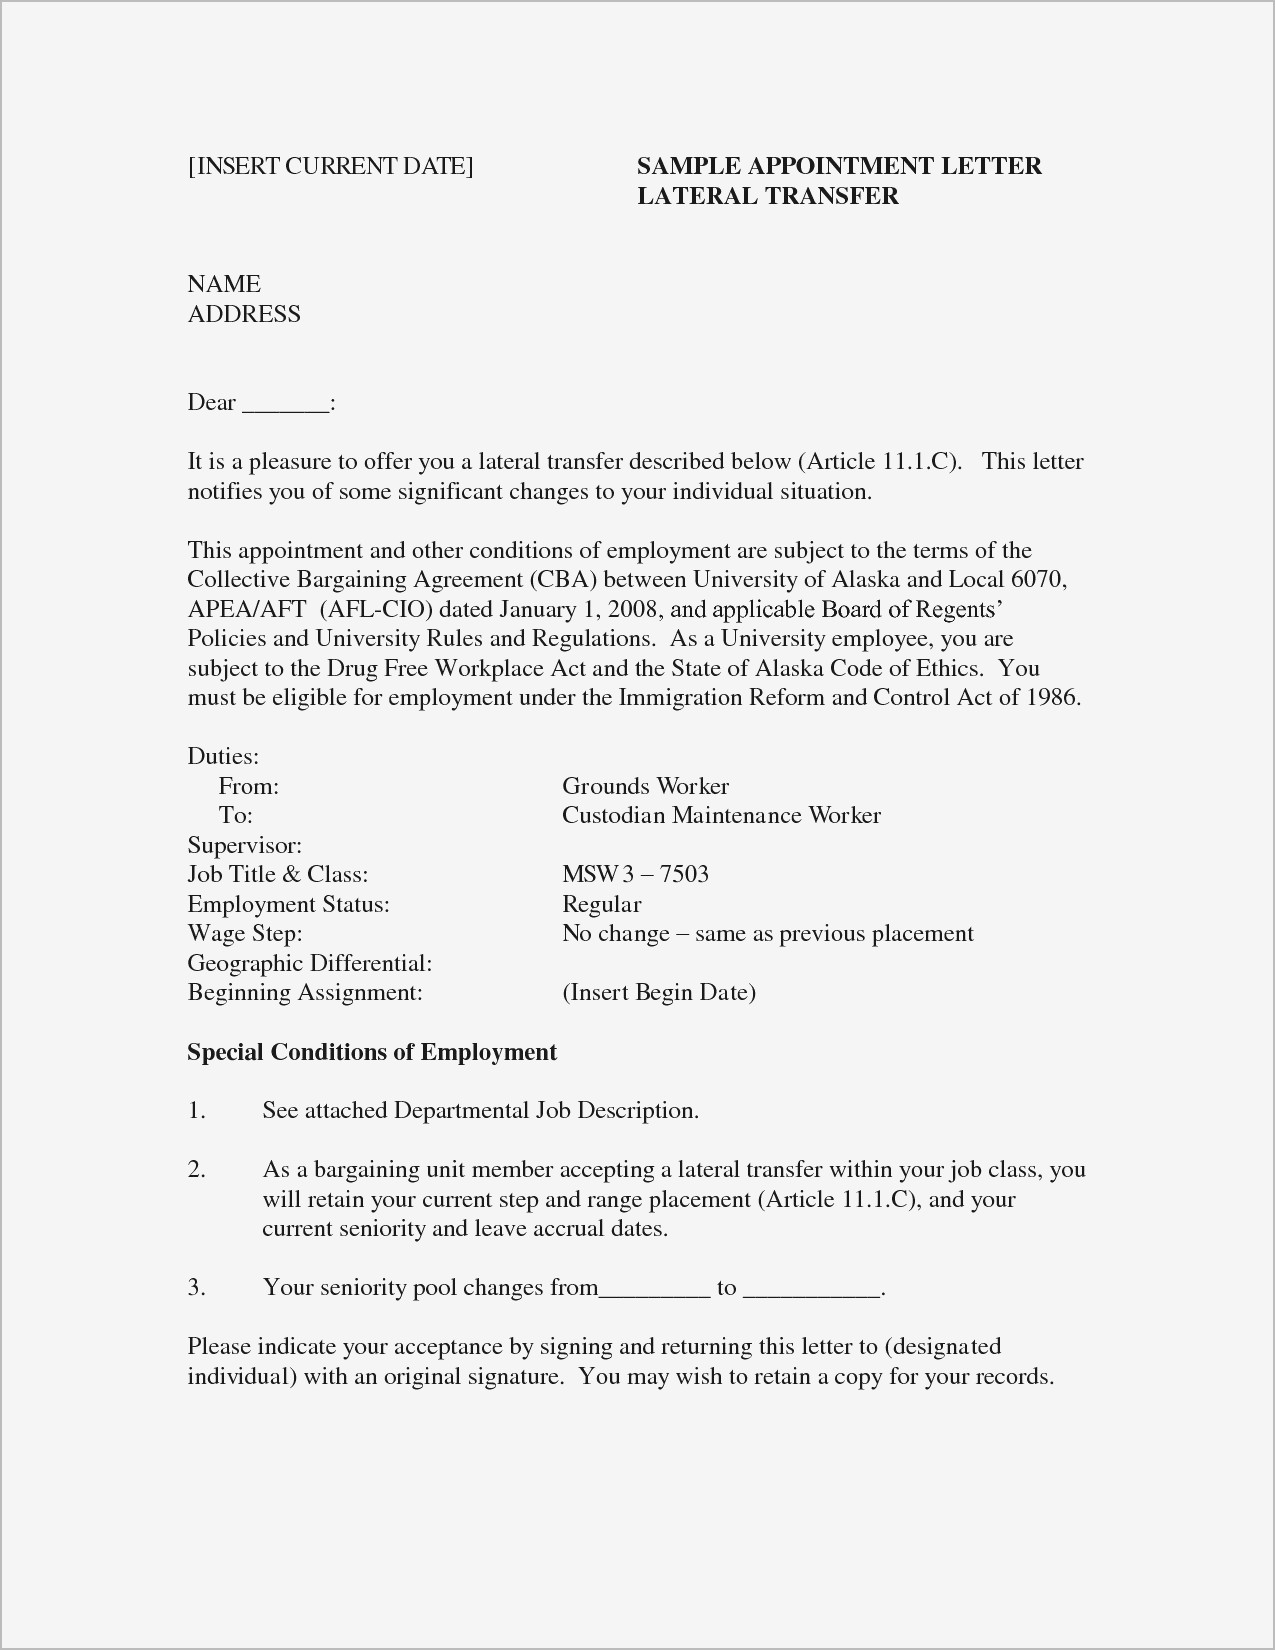 child support letter template Collection-sample child support letter template 5-p